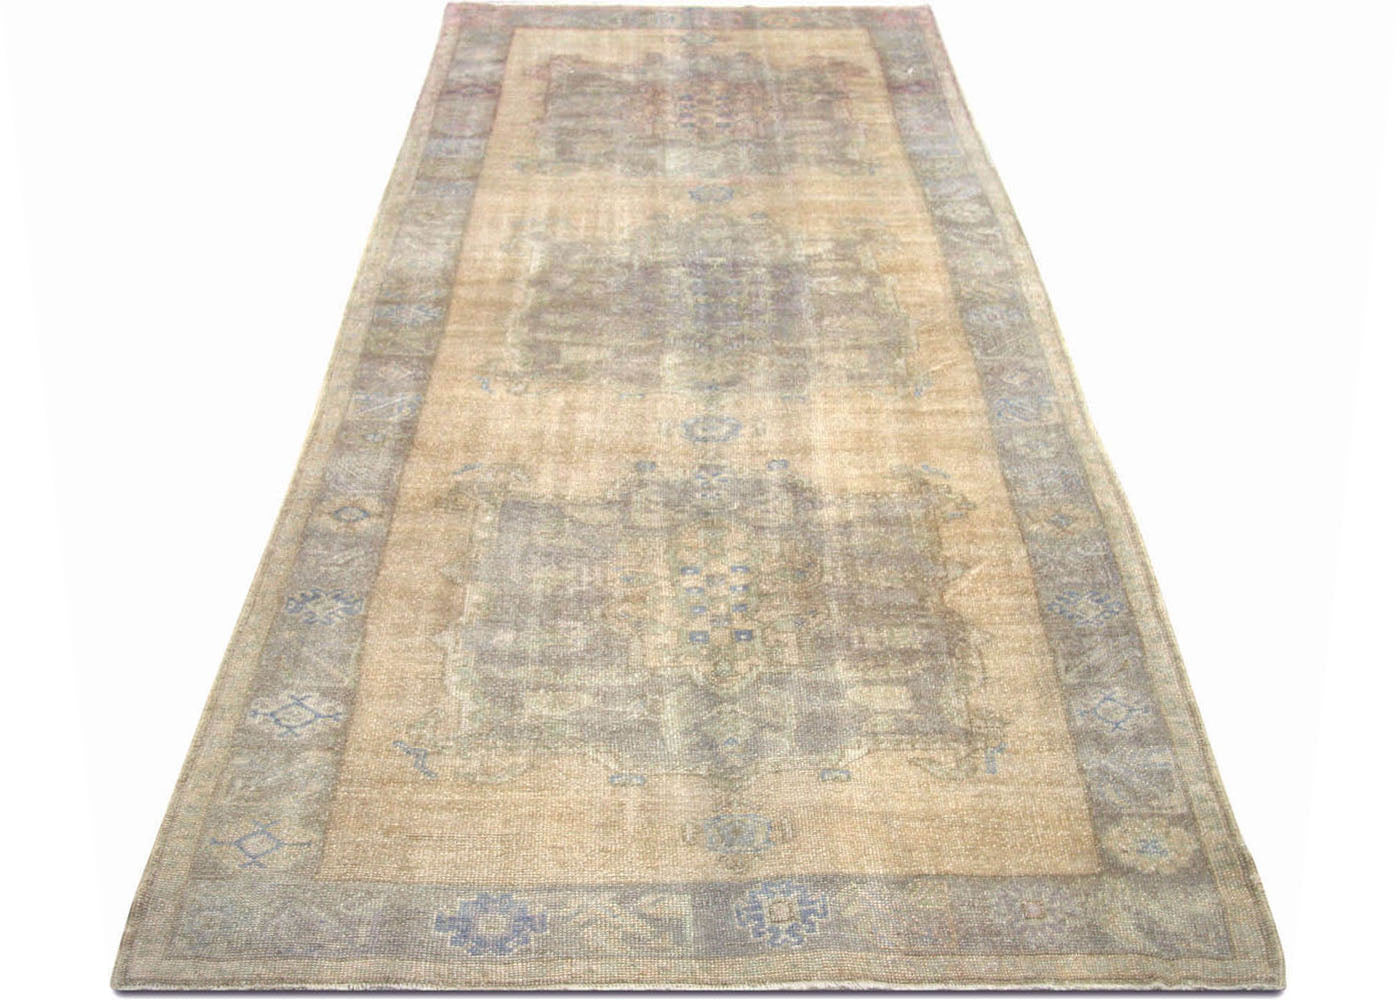 "Vintage Turkish Oushak Carpet - 5'3"" x 12'10"""